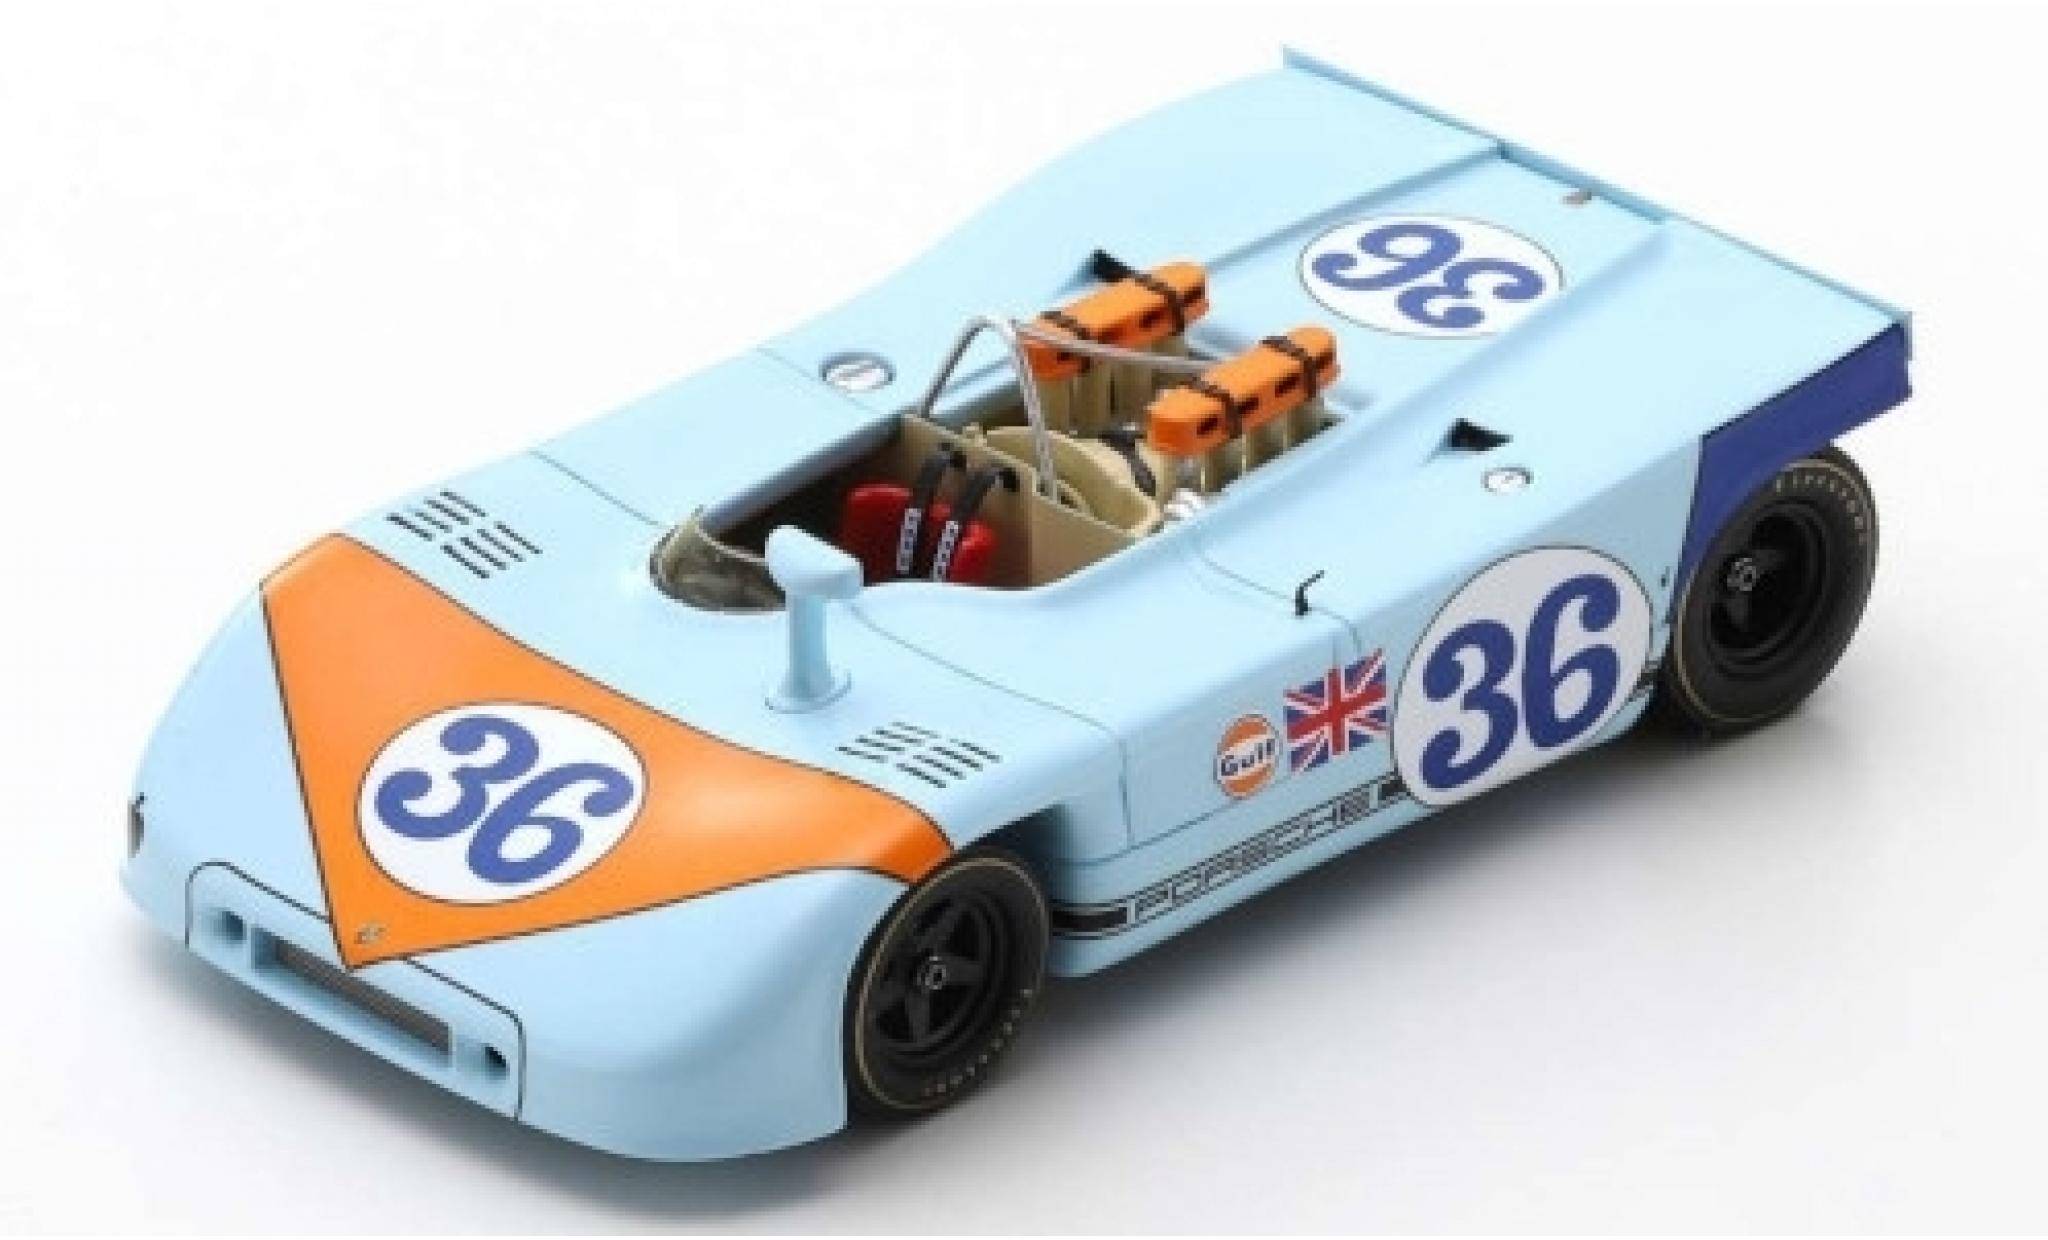 Porsche 908 1970 1/43 Spark /03 RHD No.36 J. W. Automotive Engineering Targa Florio B.Waldegard/R.Attwood